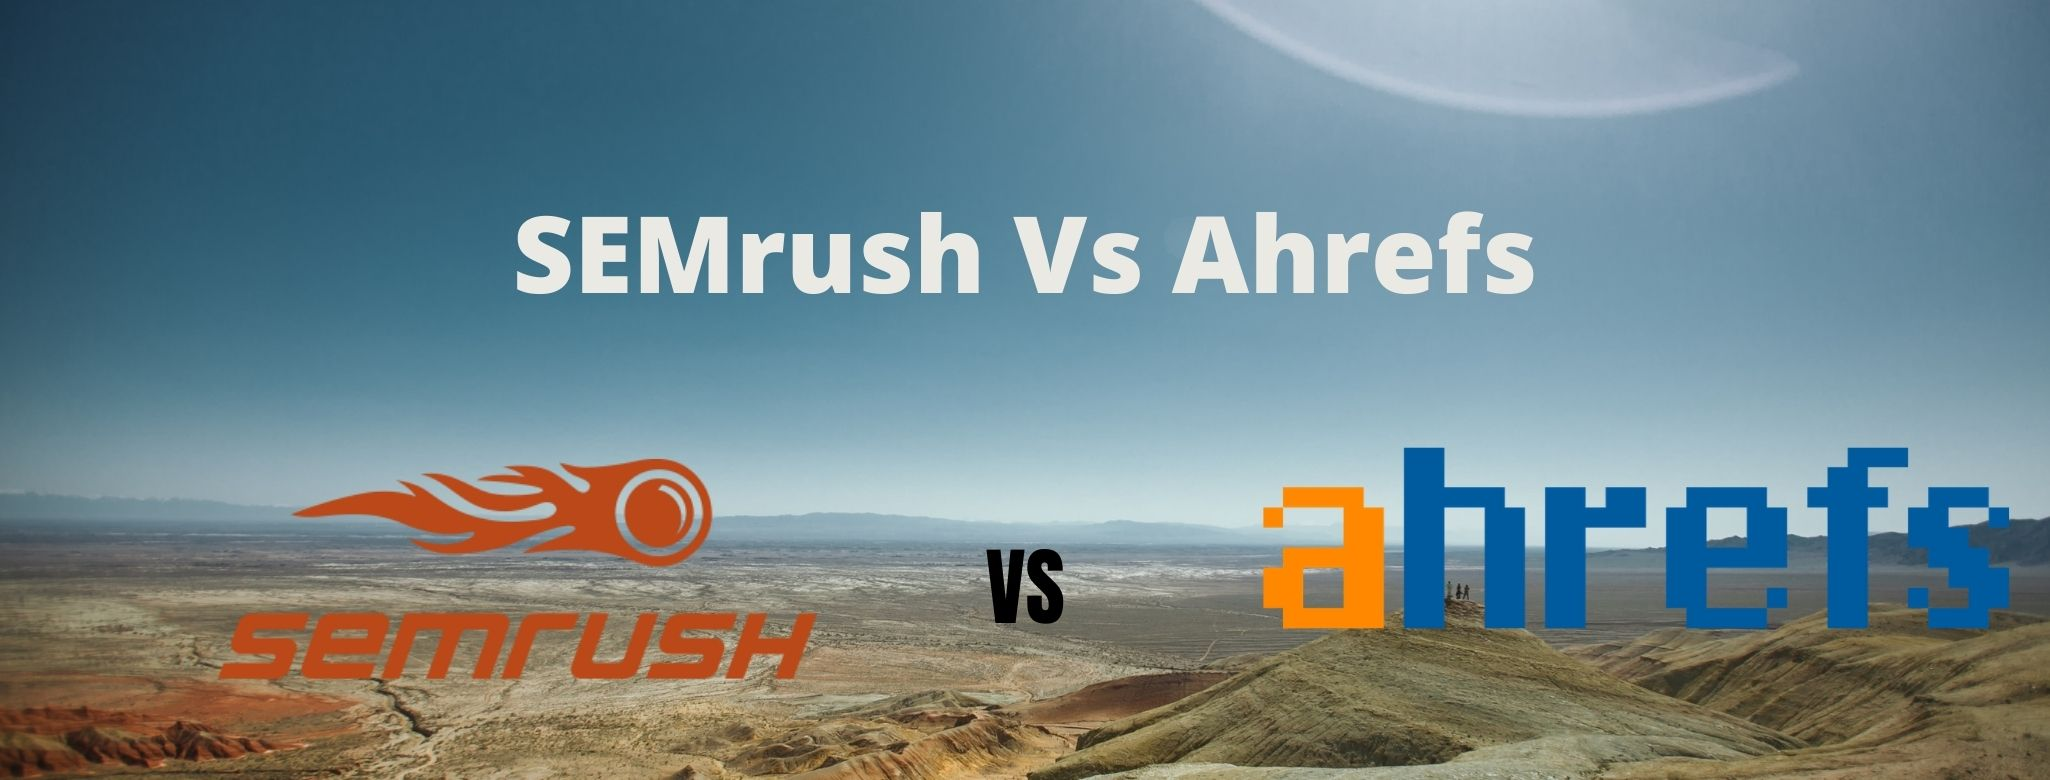 The-USEMrush-vs-Ahrefs-and-ahrefs-vs-semrush-which-is-the-best-seo-tool